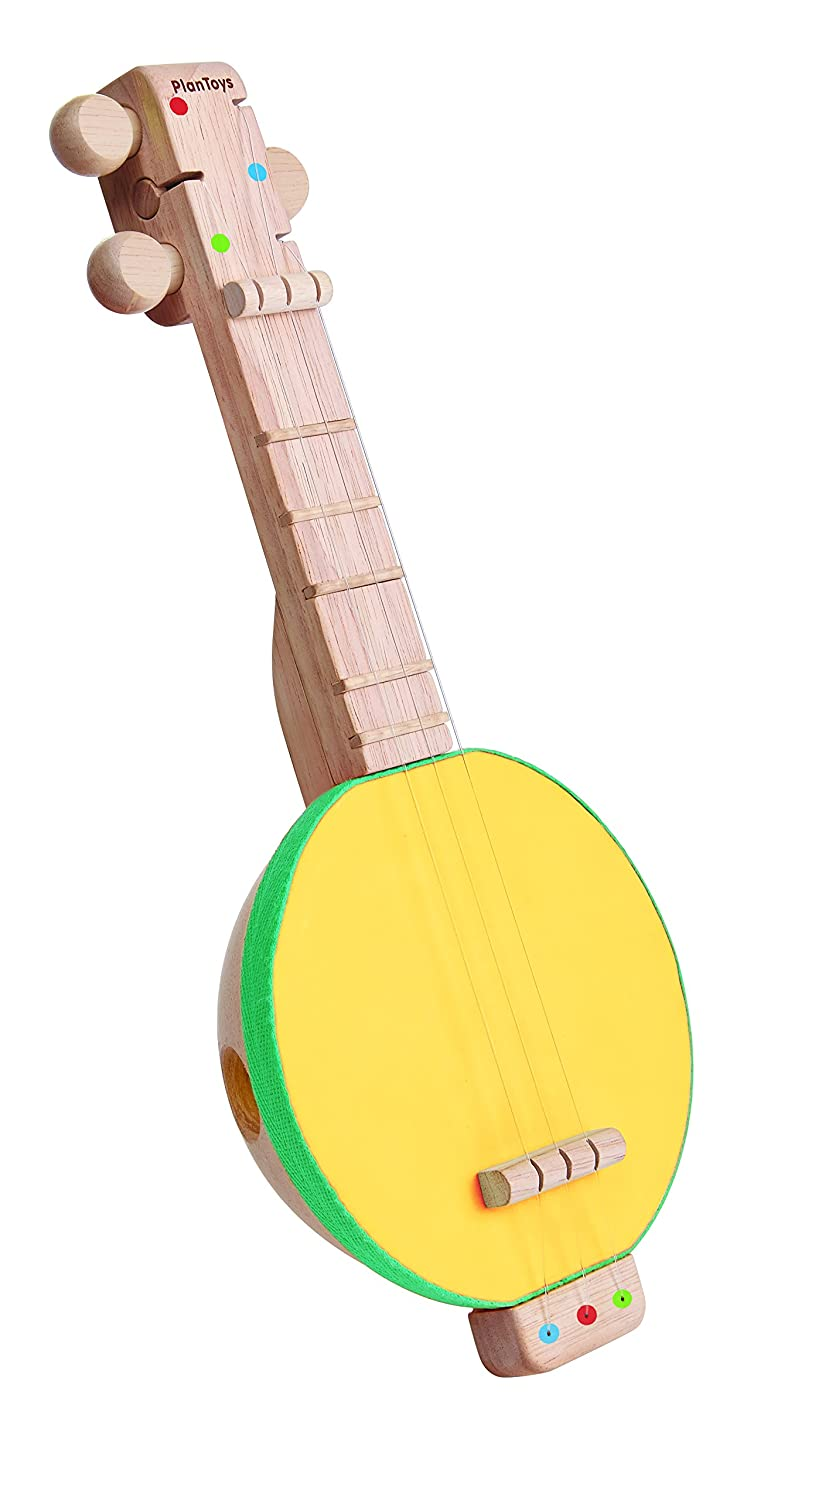 Top 7 Best Banjo Toys for Kids Reviews in 2020 5